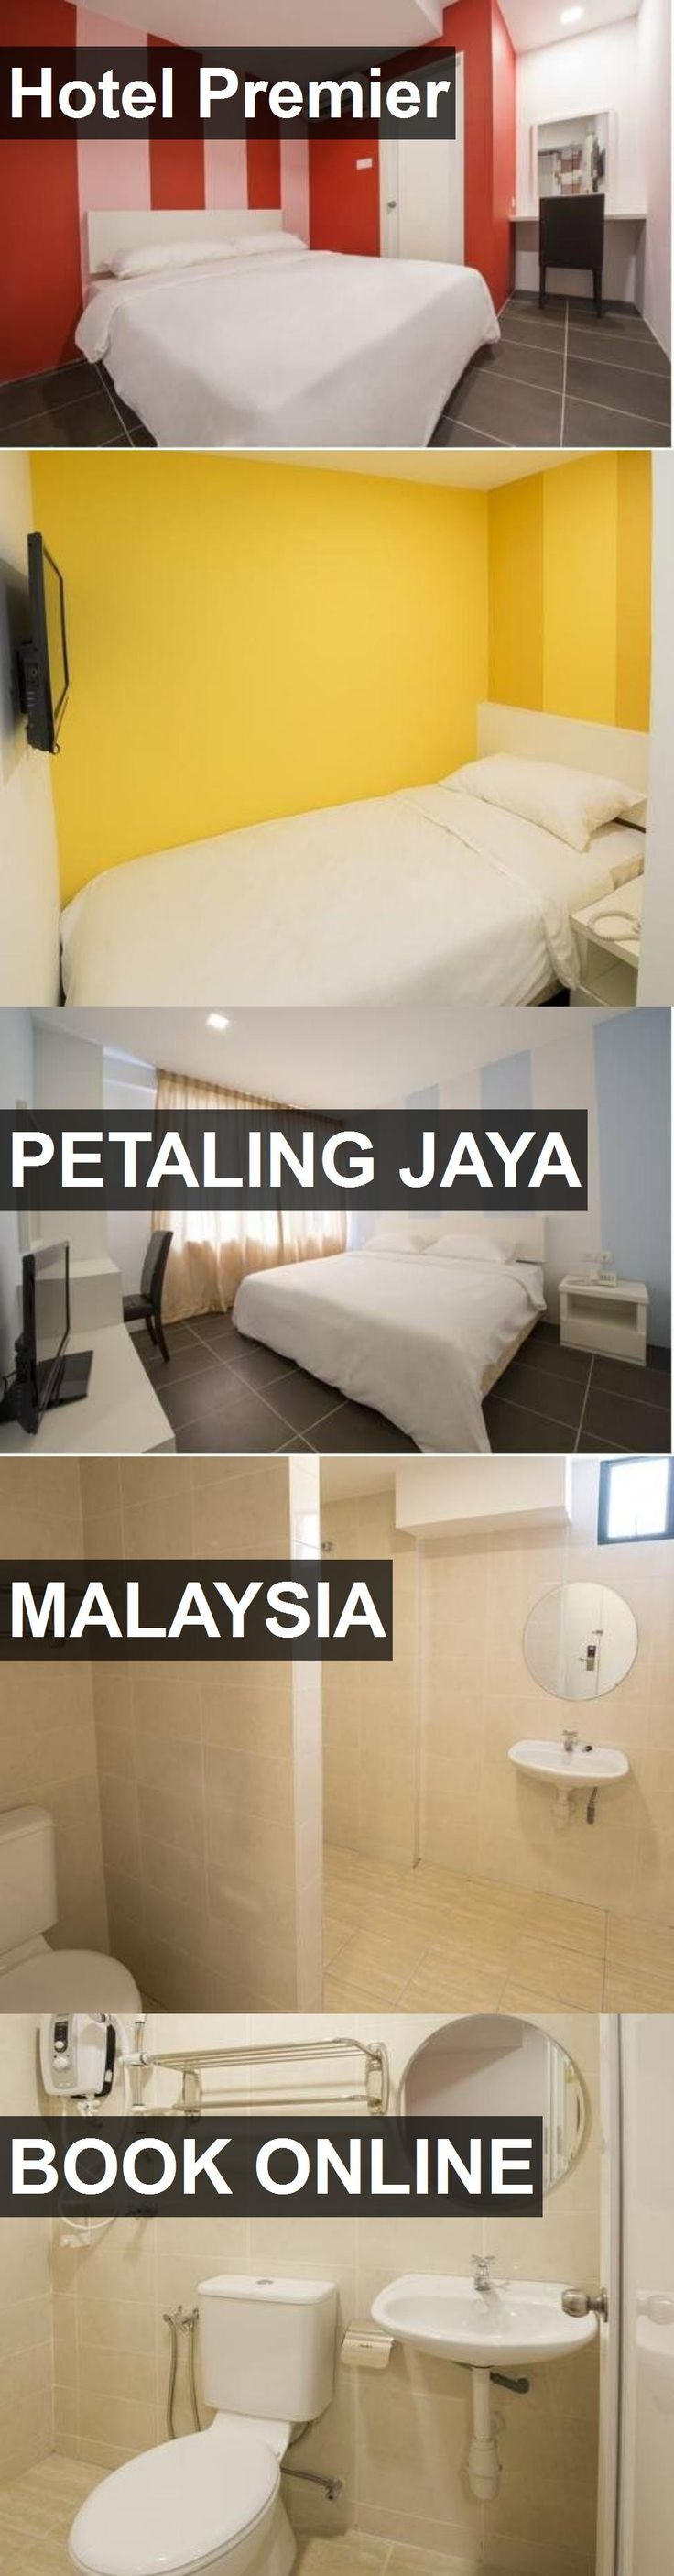 Hotel Premier in Petaling Jaya, Malaysia. For more information, photos, reviews and best prices please follow the link. #Malaysia #PetalingJaya #travel #vacation #hotel